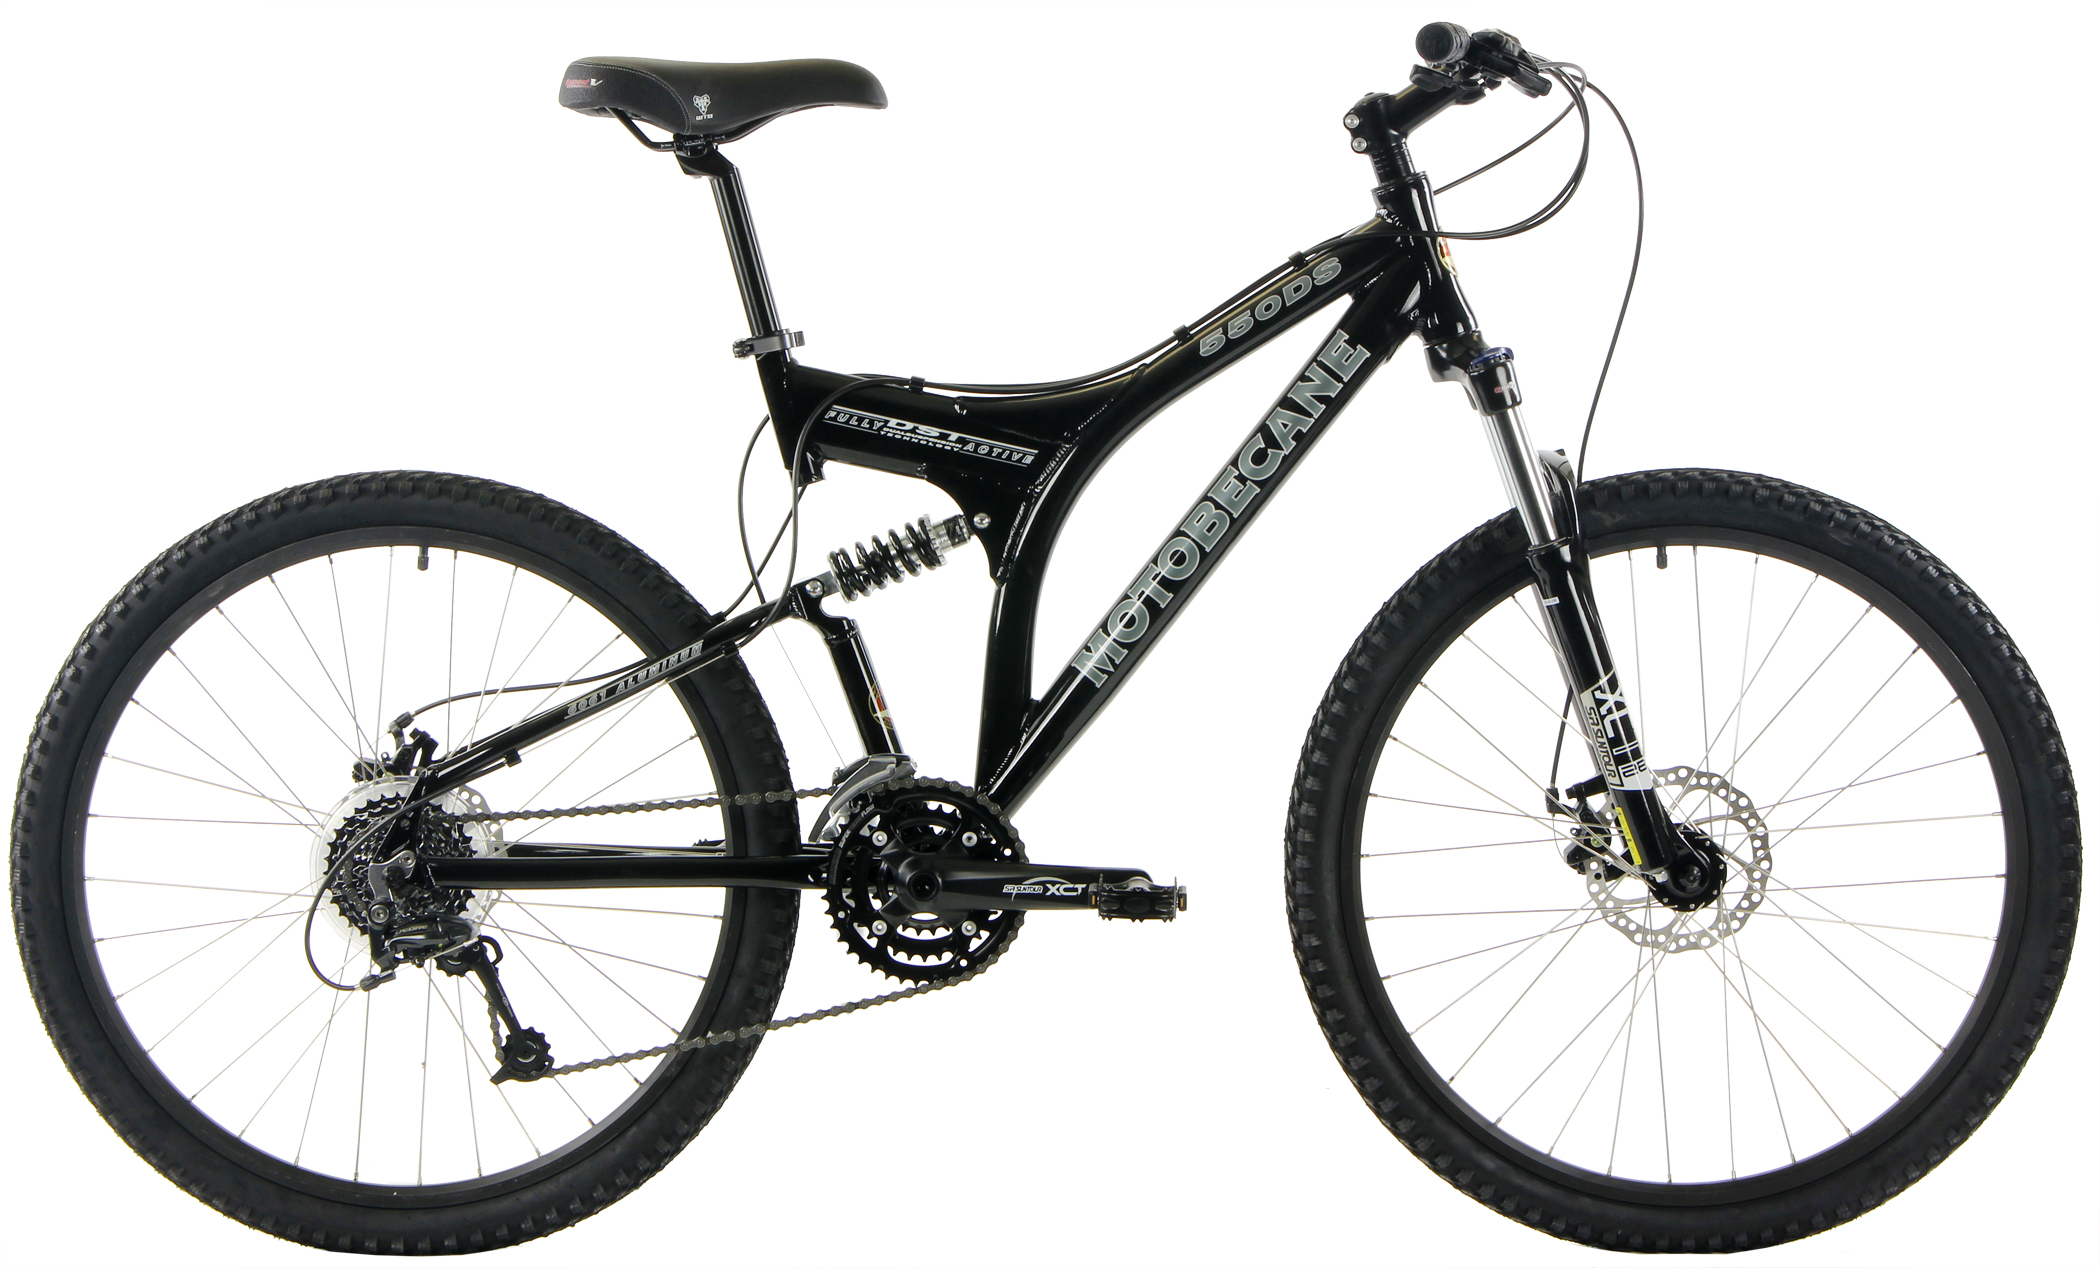 550DS - ALUMINUM FULL SUSPENSION 24sp SHIMANO w/ DISC